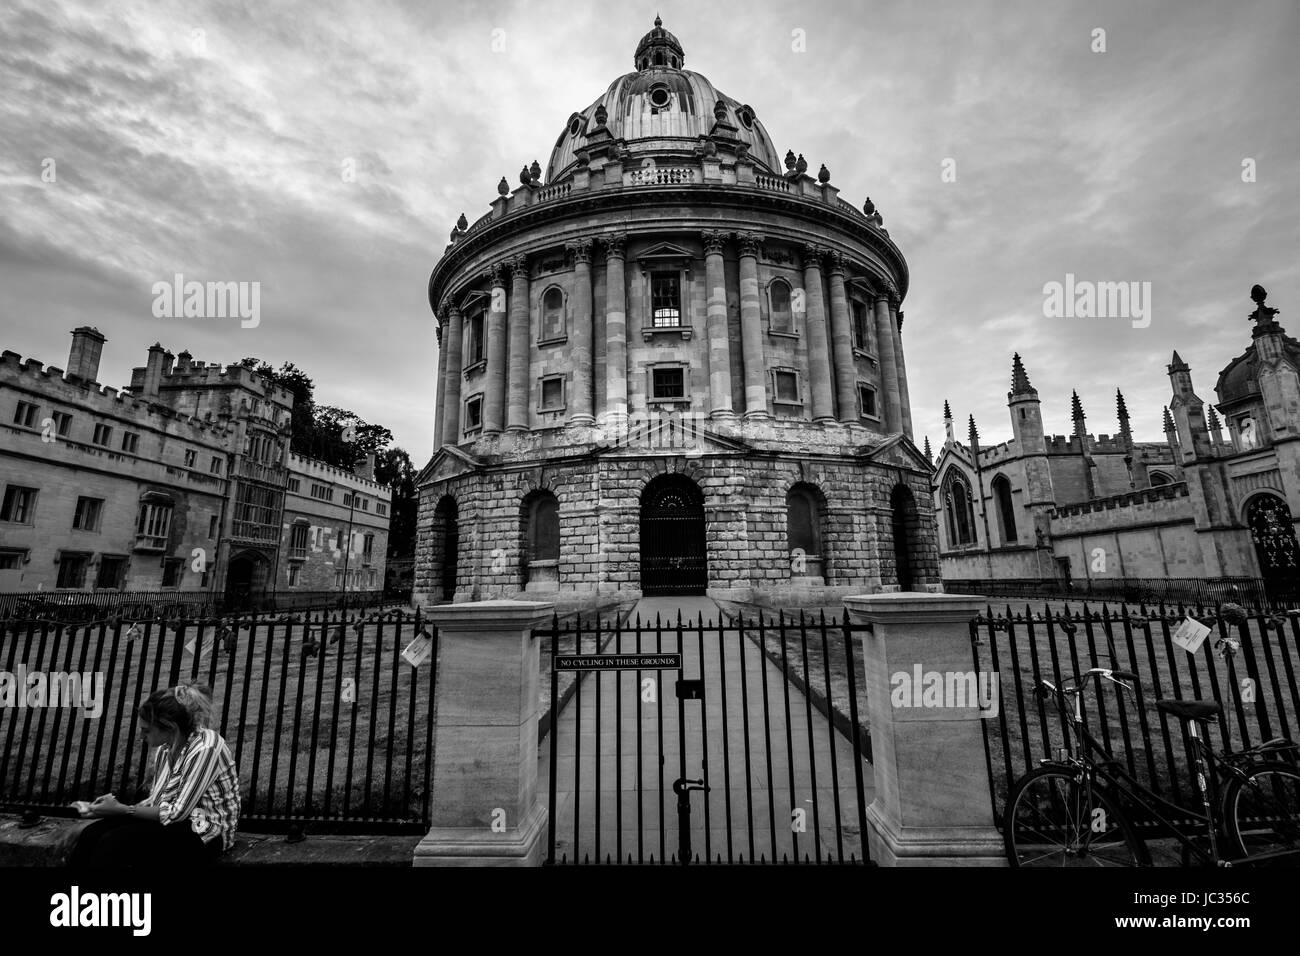 Les bâtiments de l'université d'Oxford Photo Stock